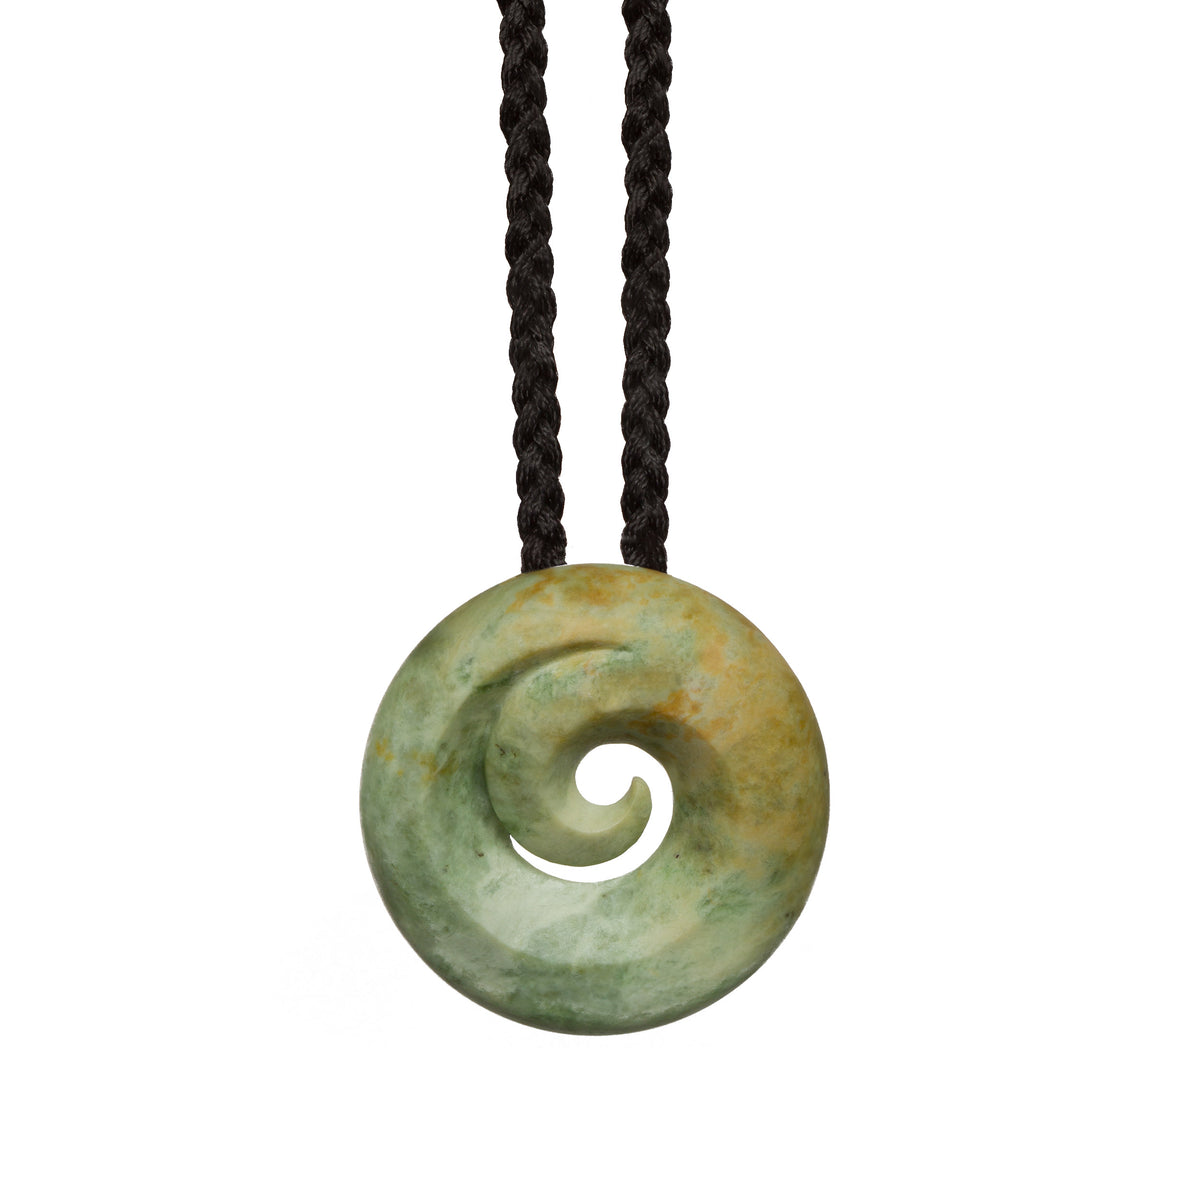 39mm x 38mm / New Zealand Pounamu // JB-001